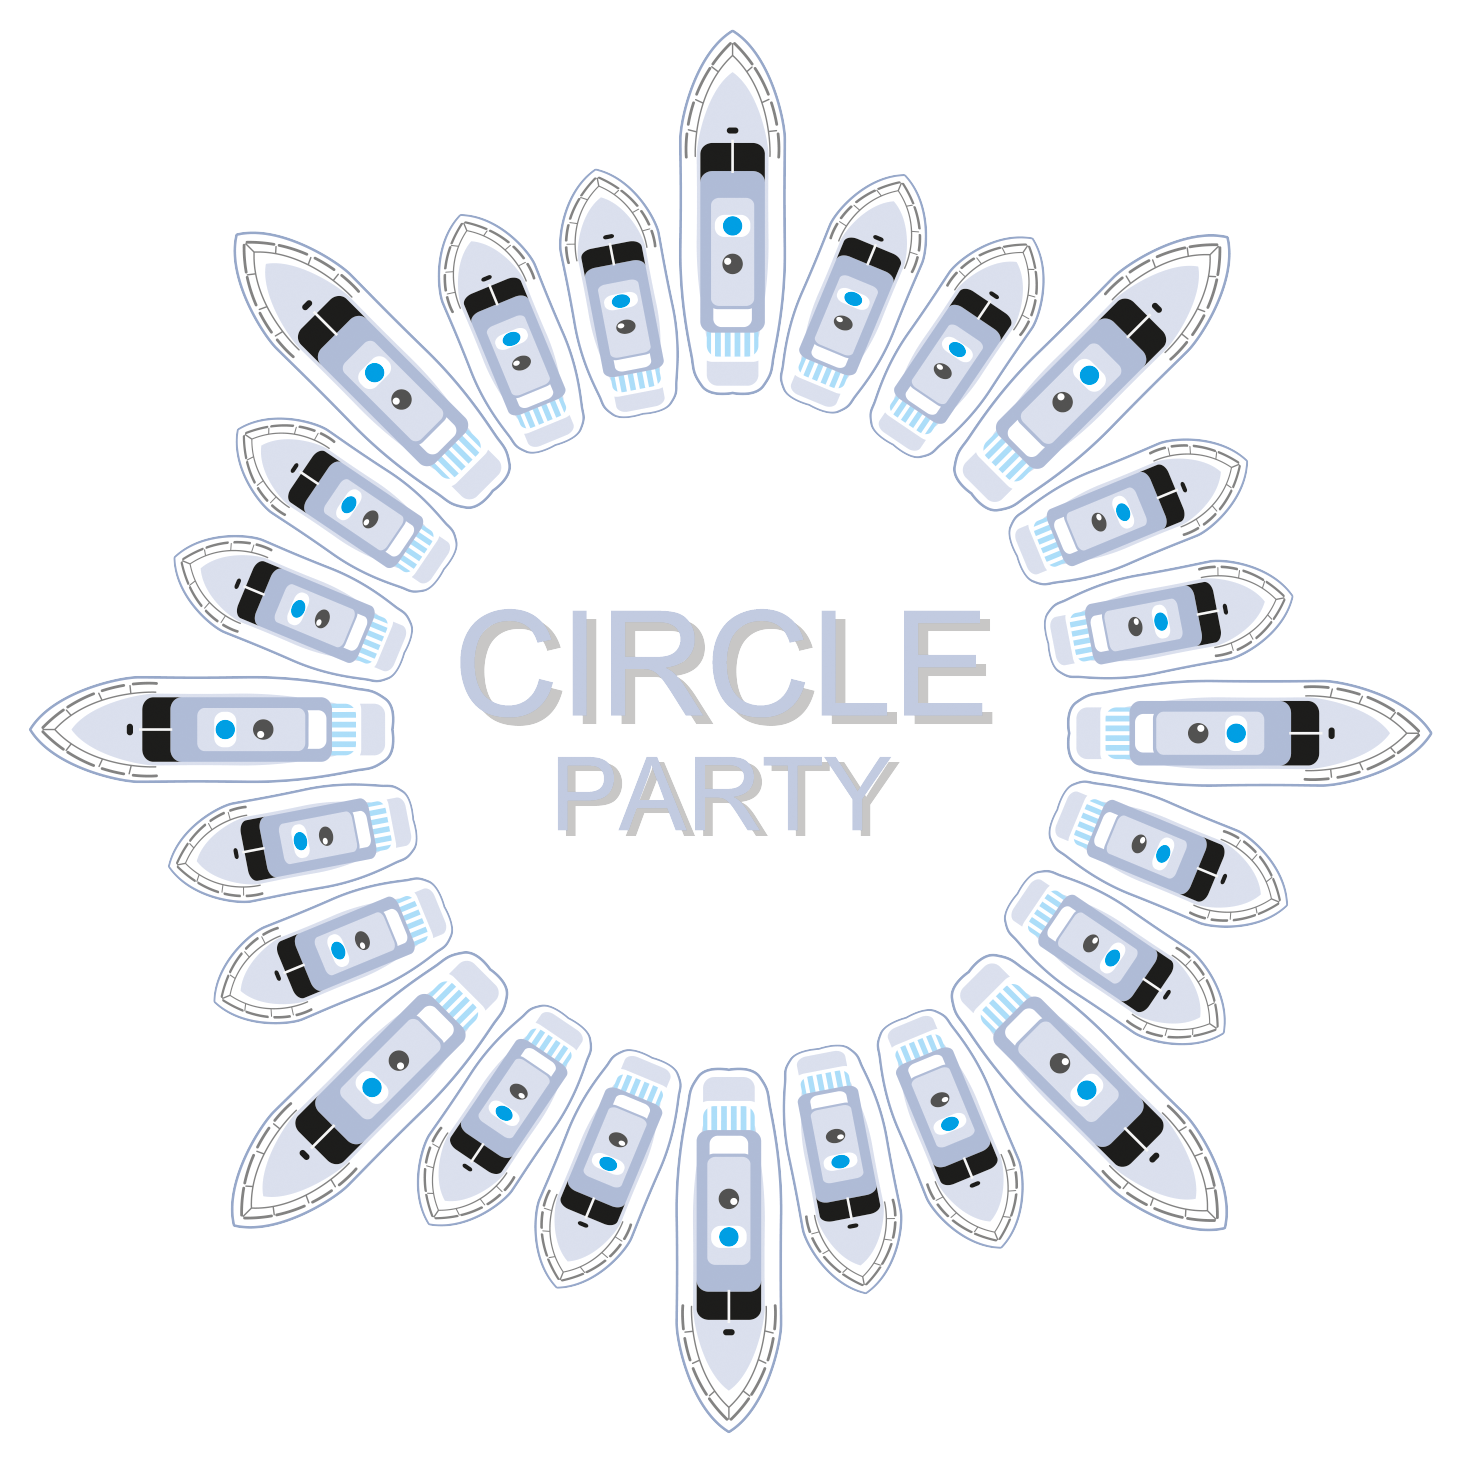 The Circle Party